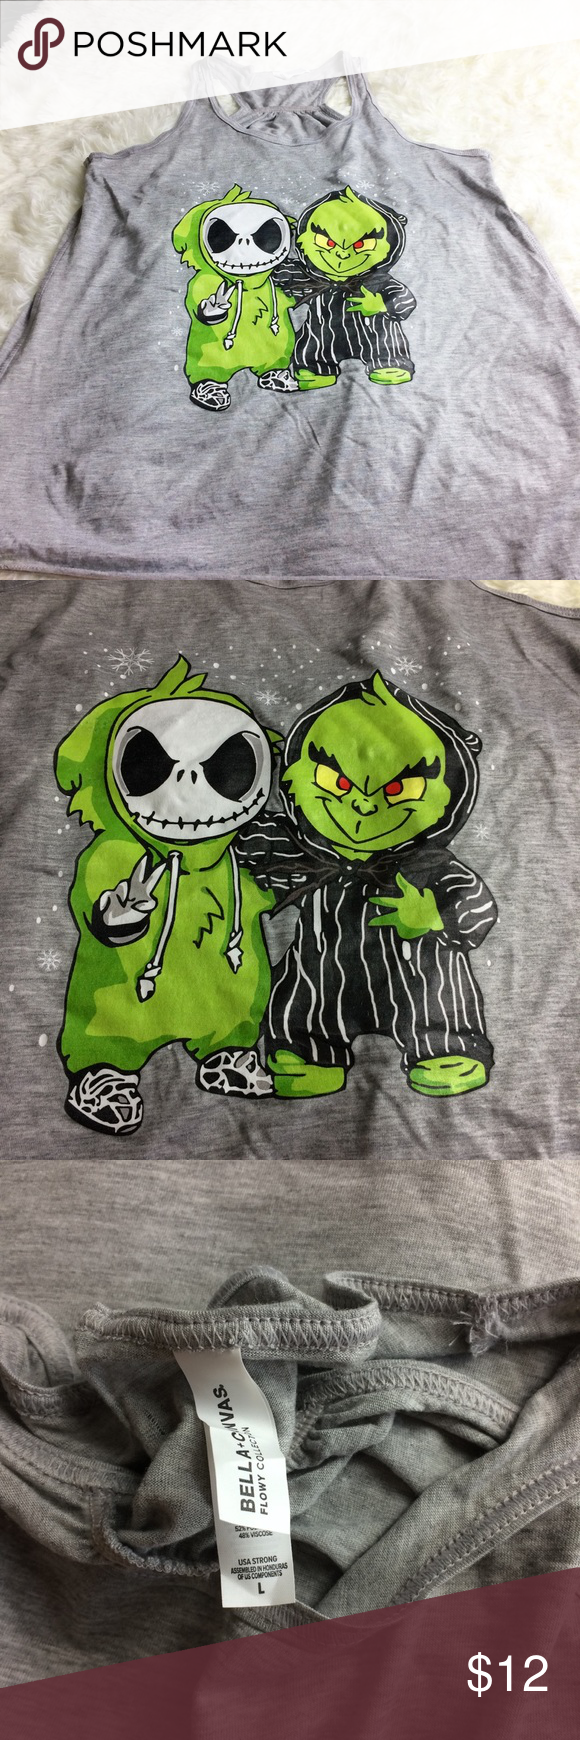 NWOT Jack and Grinch Tank NWOT Jack and Grinch Tank